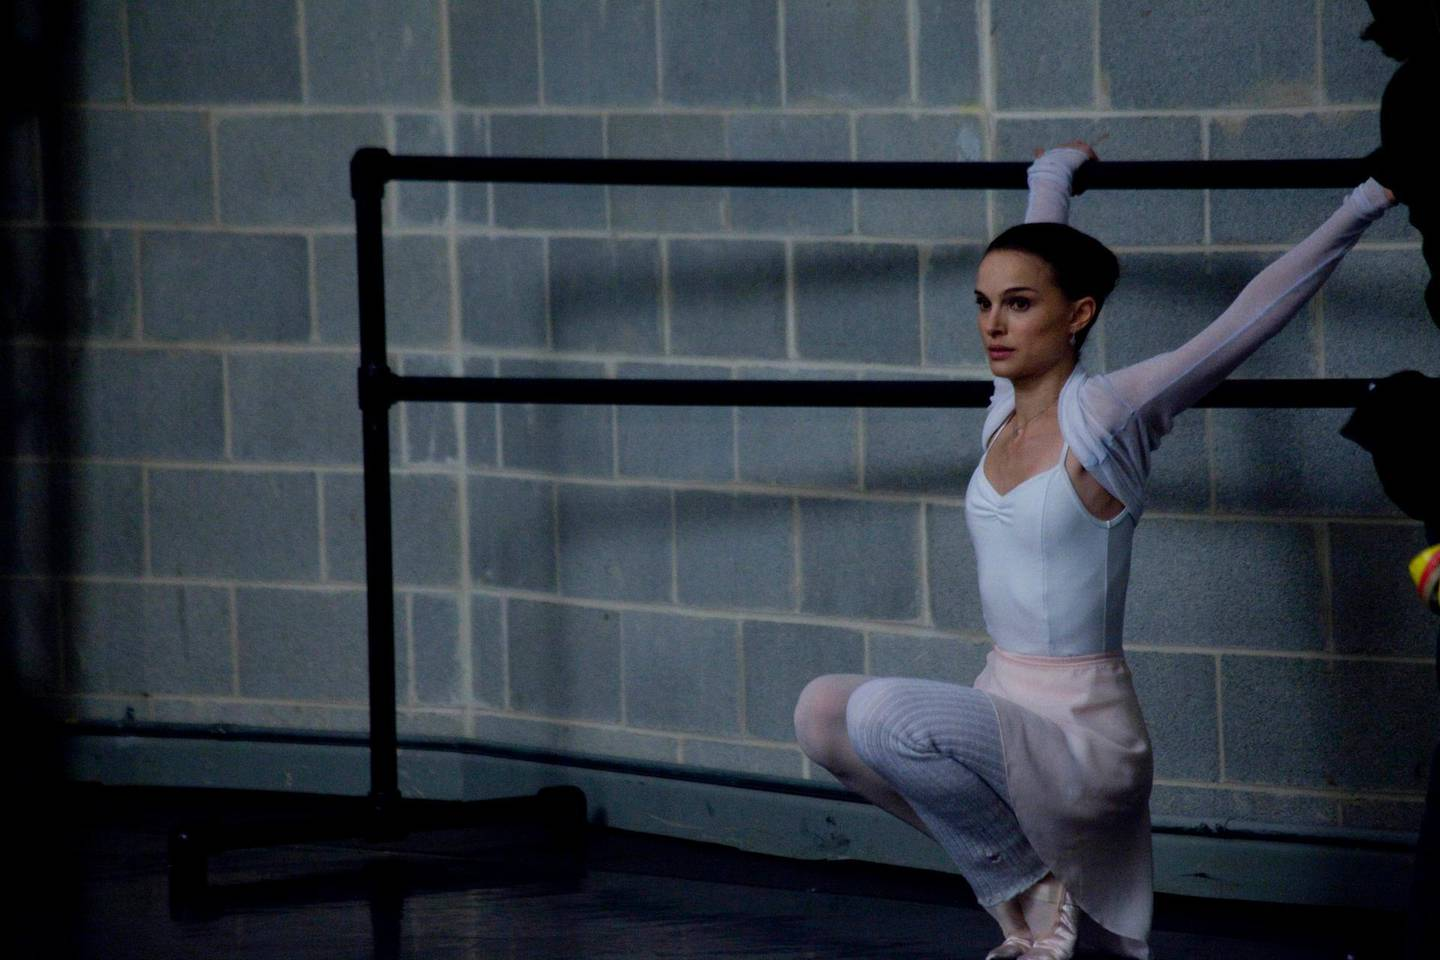 Natalie Portman in Black Swan. Courtesy Fox Searchlight Pictures